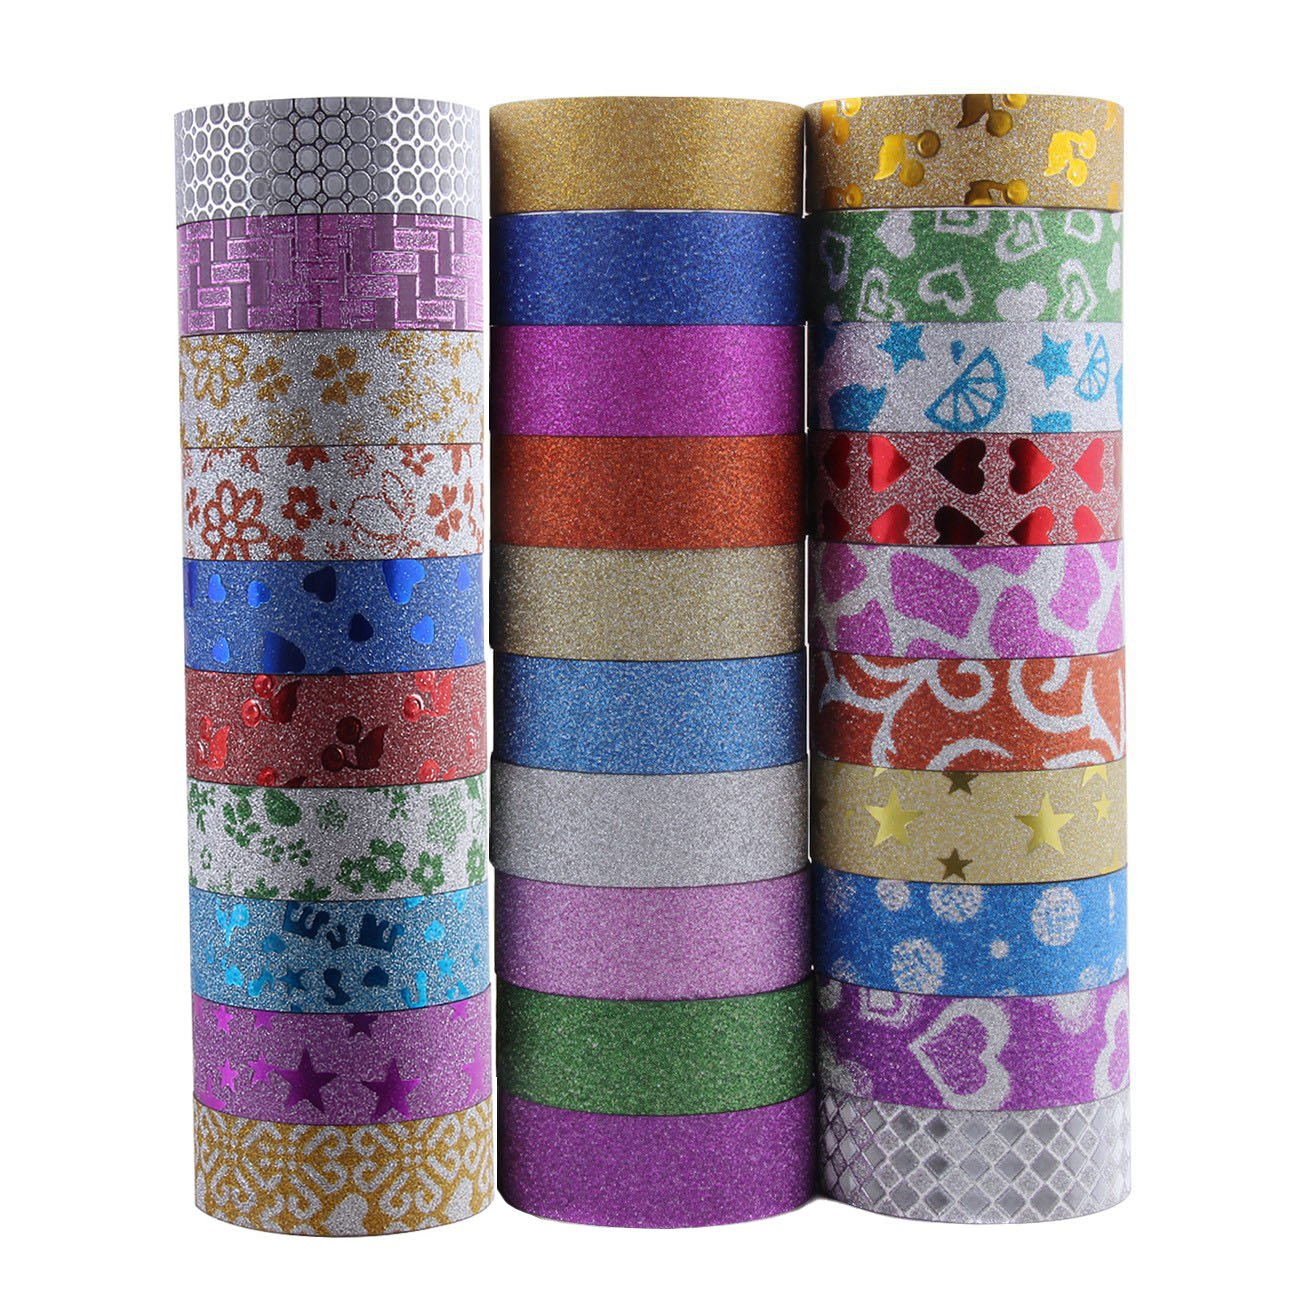 Set of 30 Glitter Washi Masking Tape - 9.84Ft Length and 0.59 Inch Width Each Roll - DIY Gift Crafting Sticky Tapes Decor Scrapbooking Sticker Masking Paper Decoration Tape Holiday Sticker Numblartd